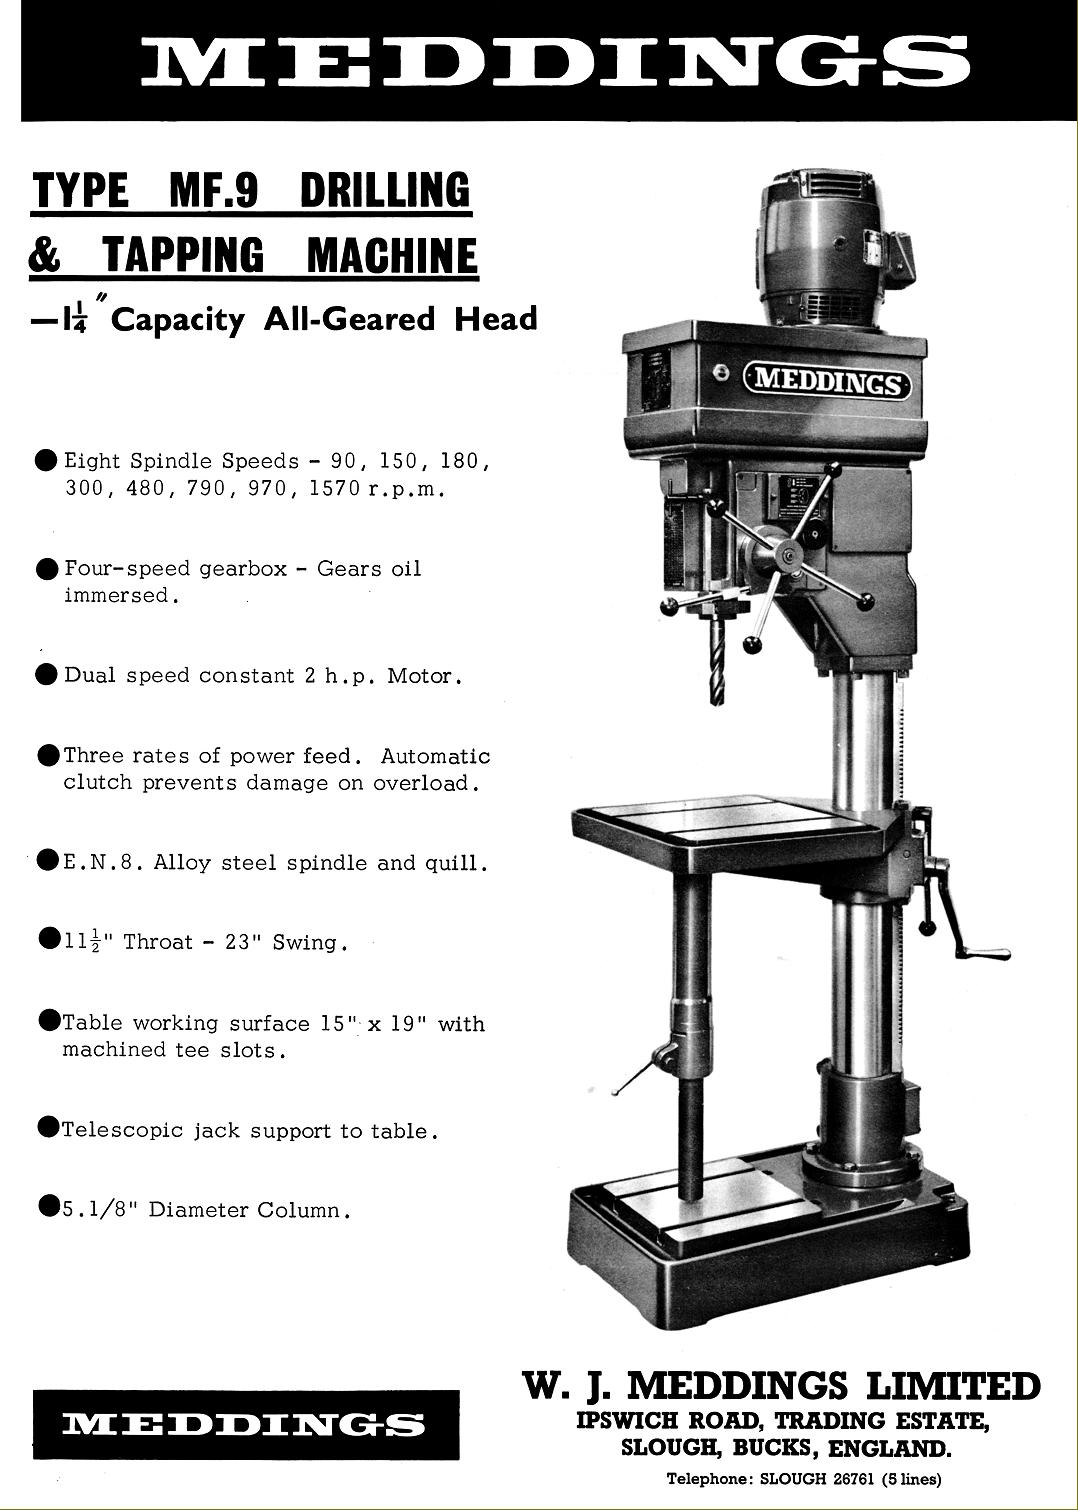 Manuals & Parts Books are available for Meddings Drills & Bandsaws, etc.